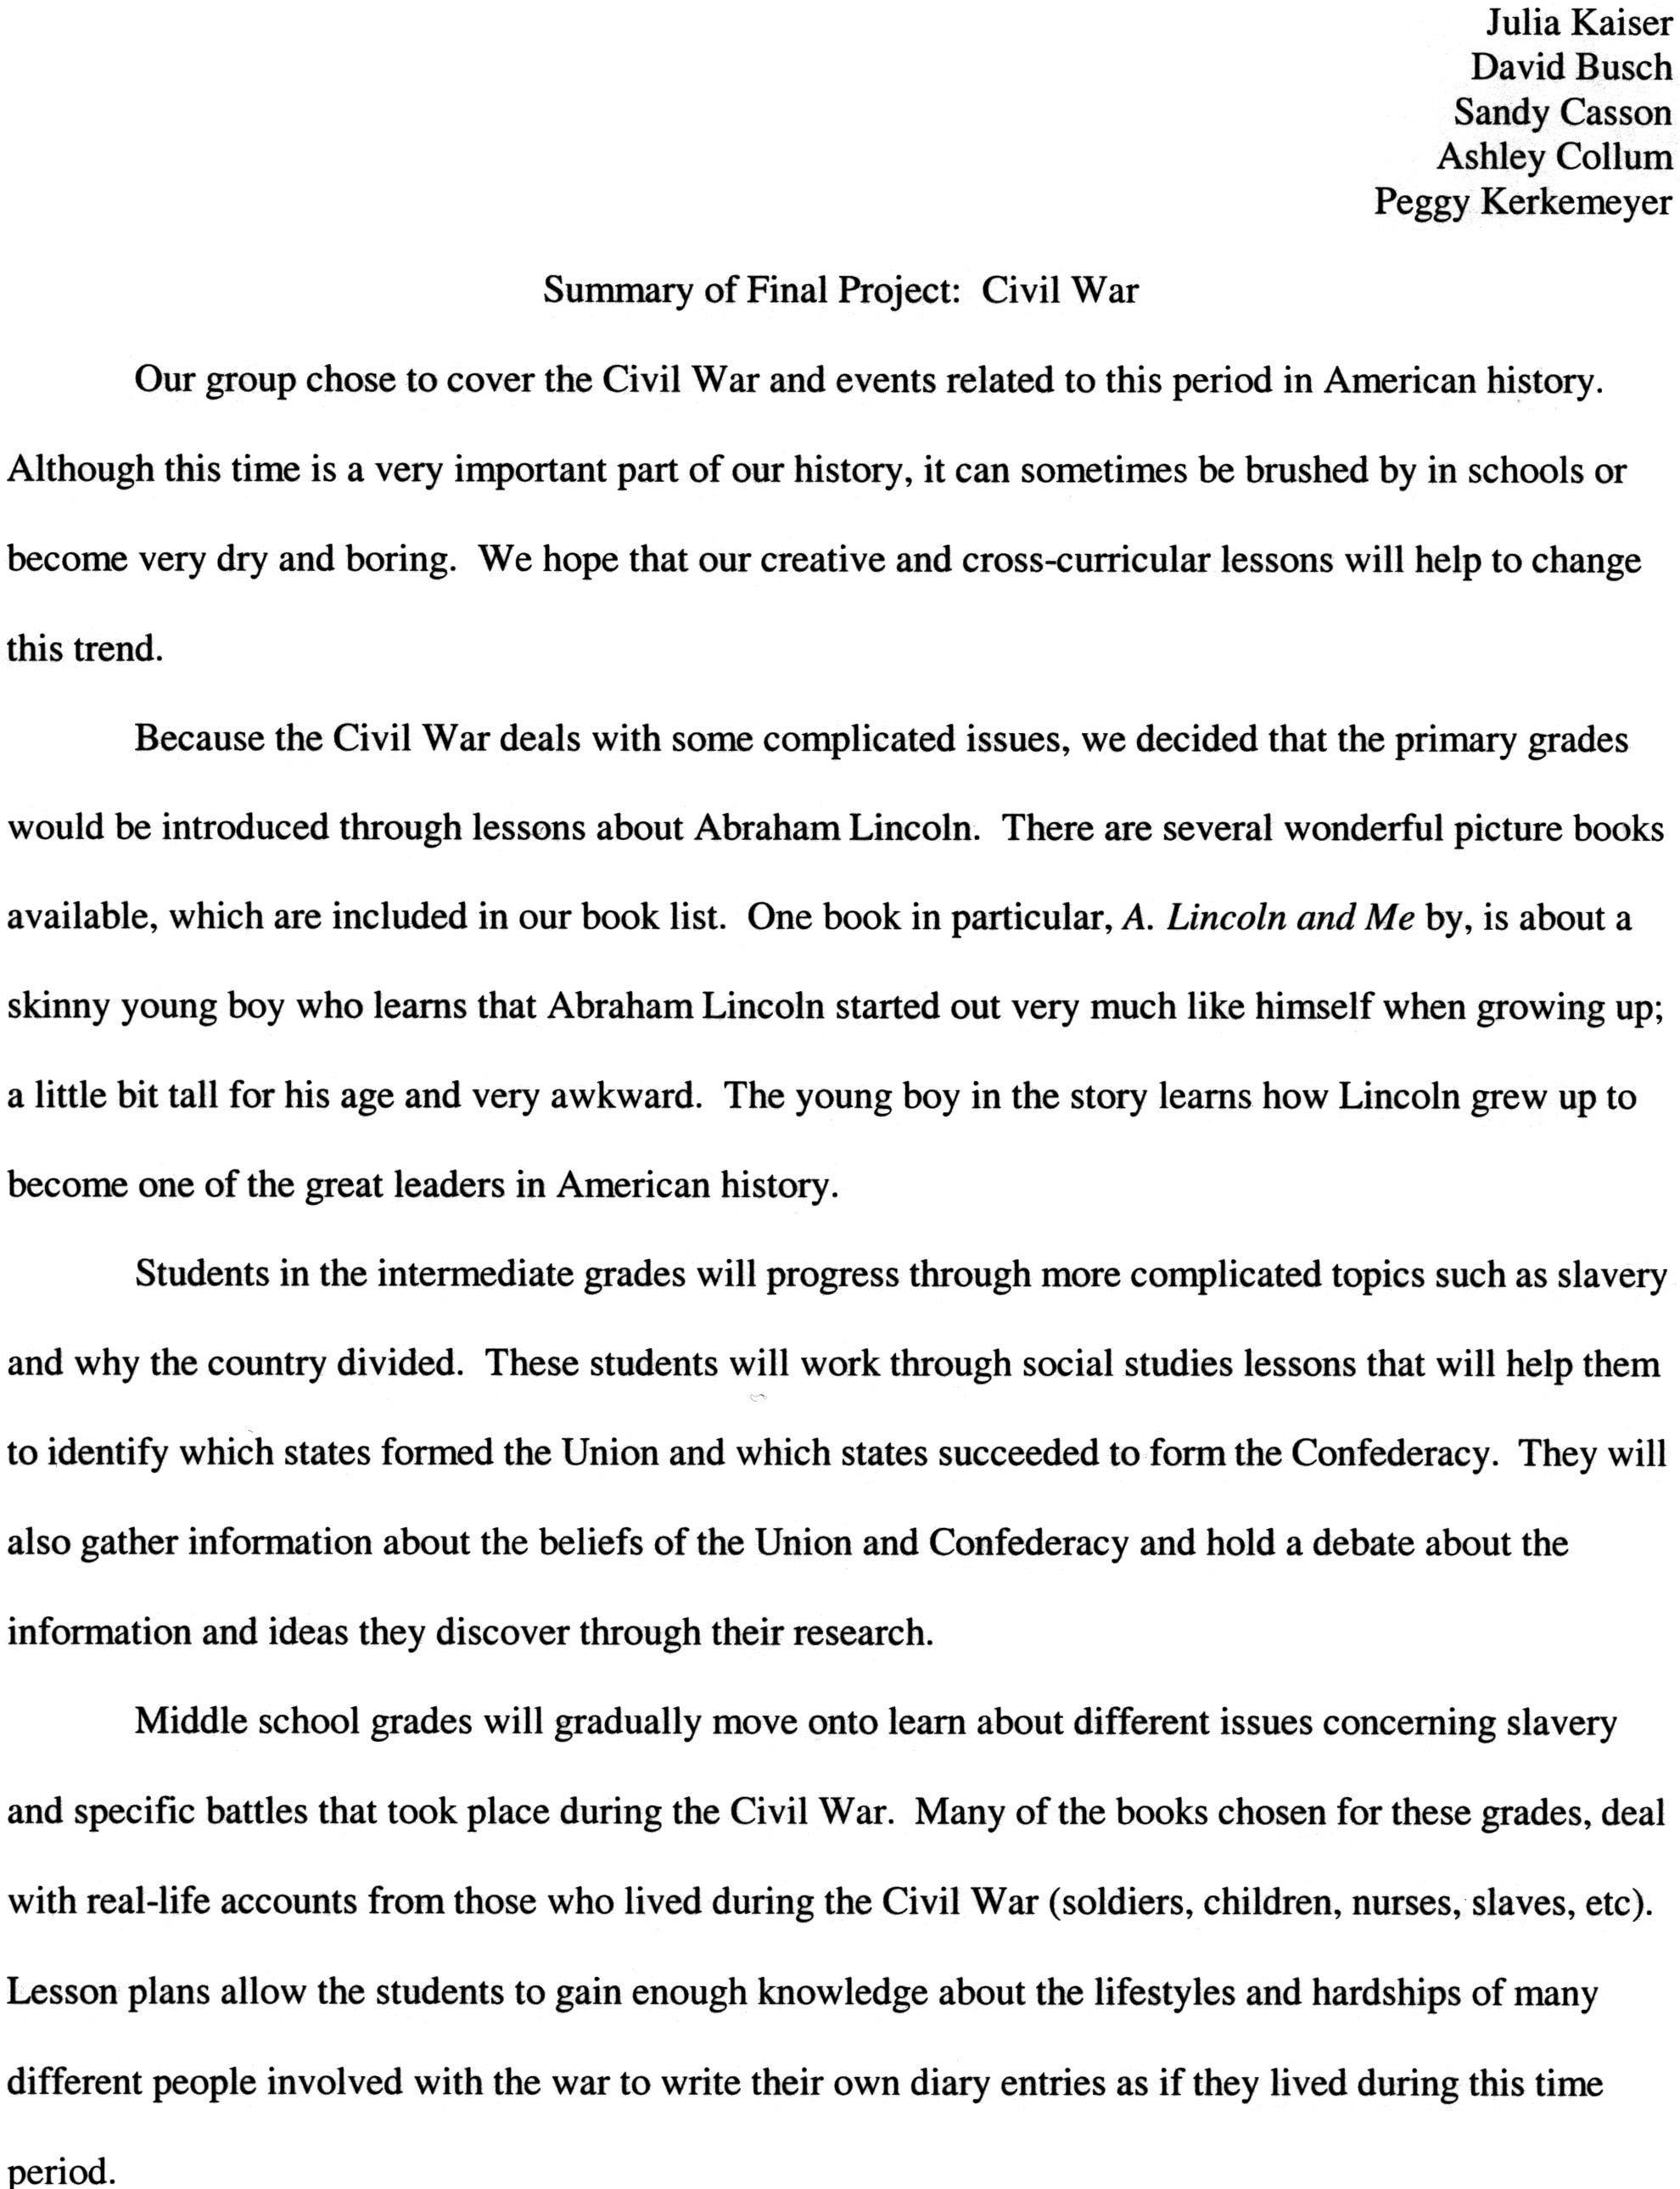 008 Academic Research Paper Essays Civil War Essay Hooks Surprising